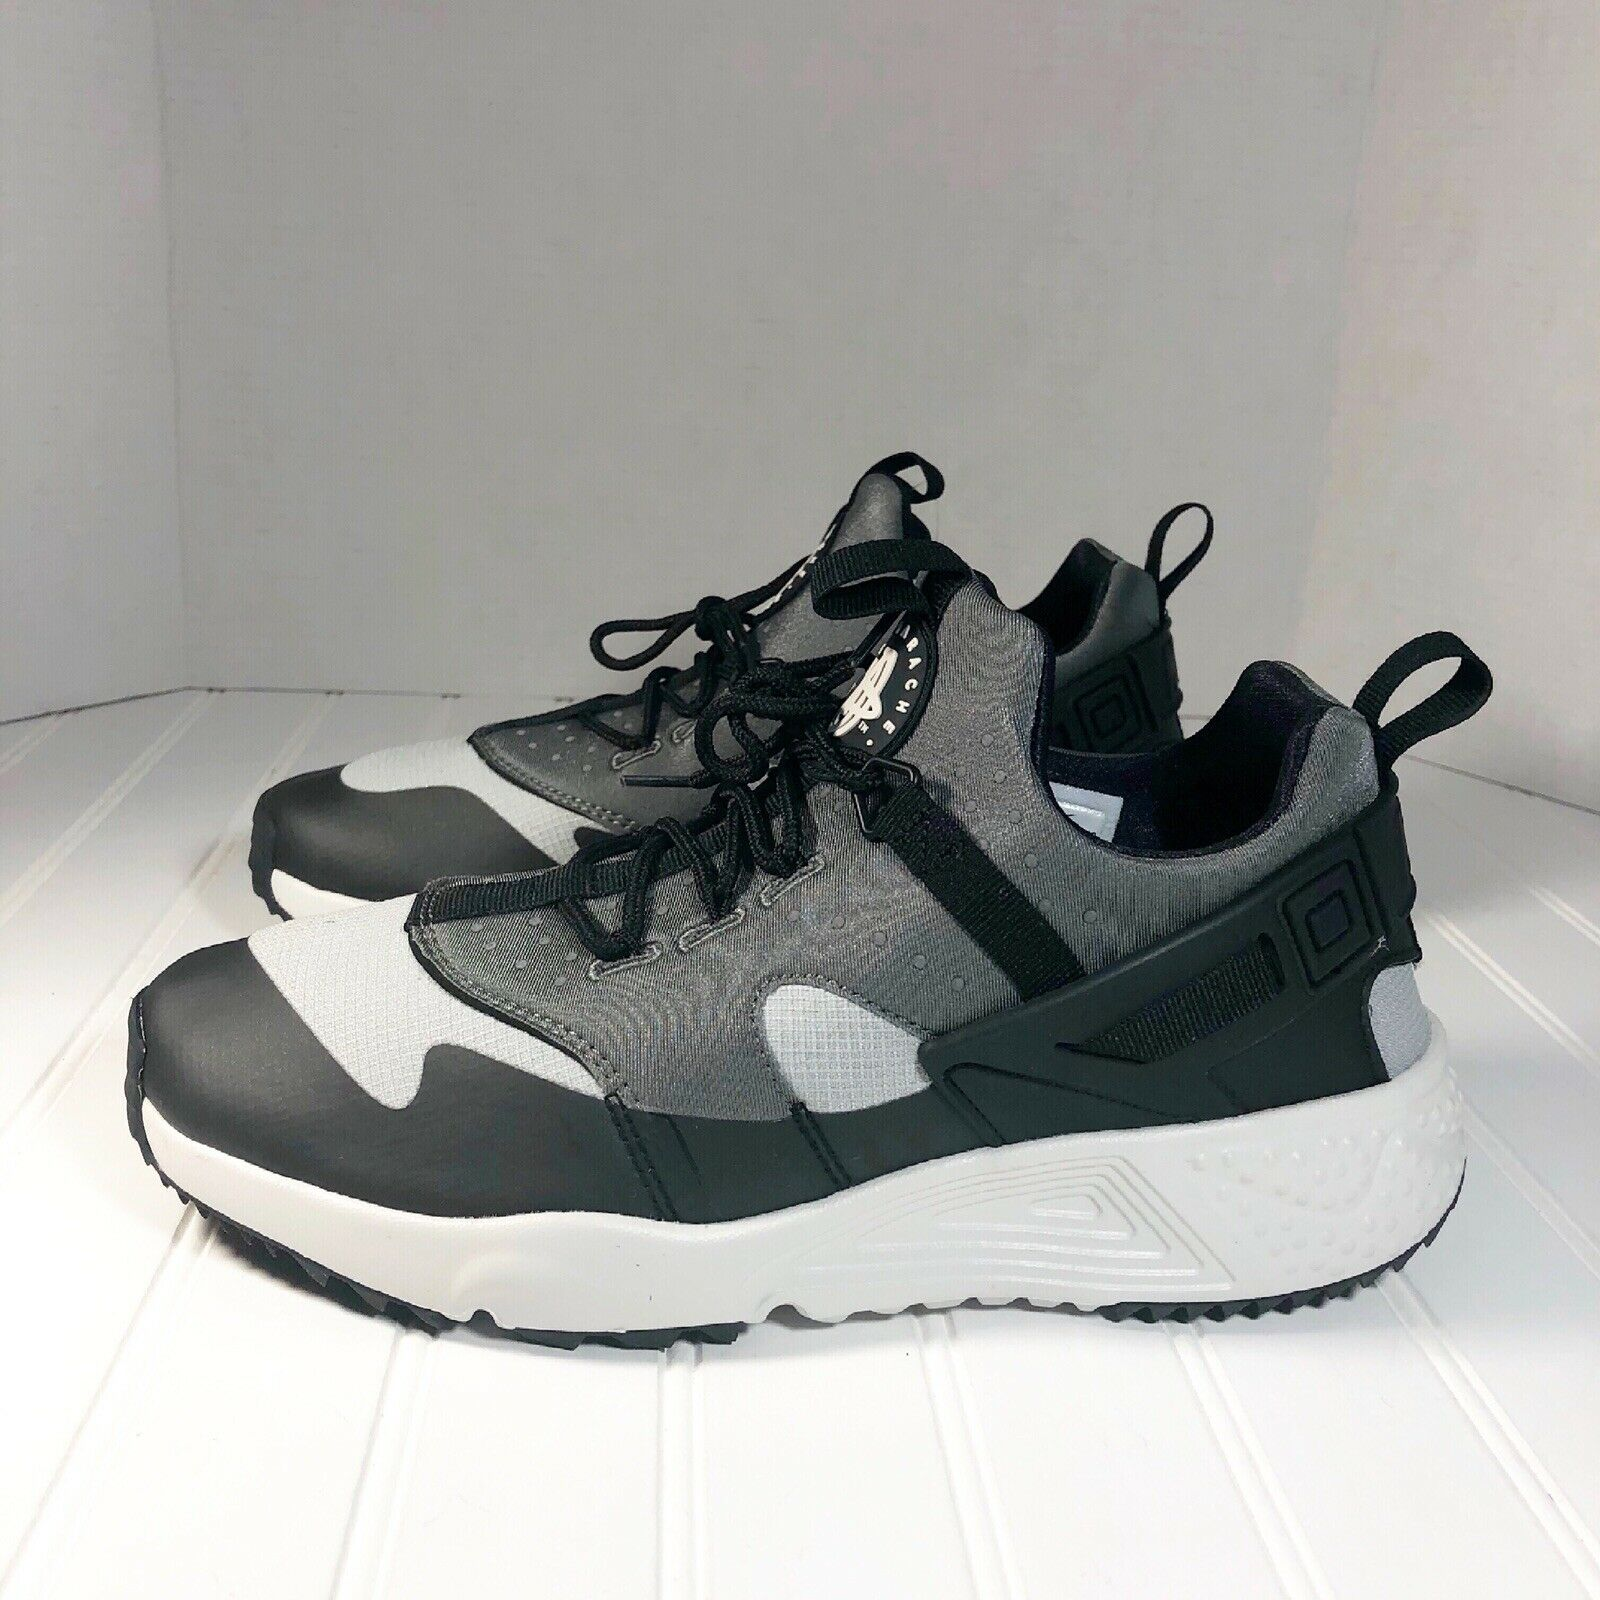 Nike Air Huarache Utility Men's shoes Size 8.5 Base Grey Cold Weather 806807-003